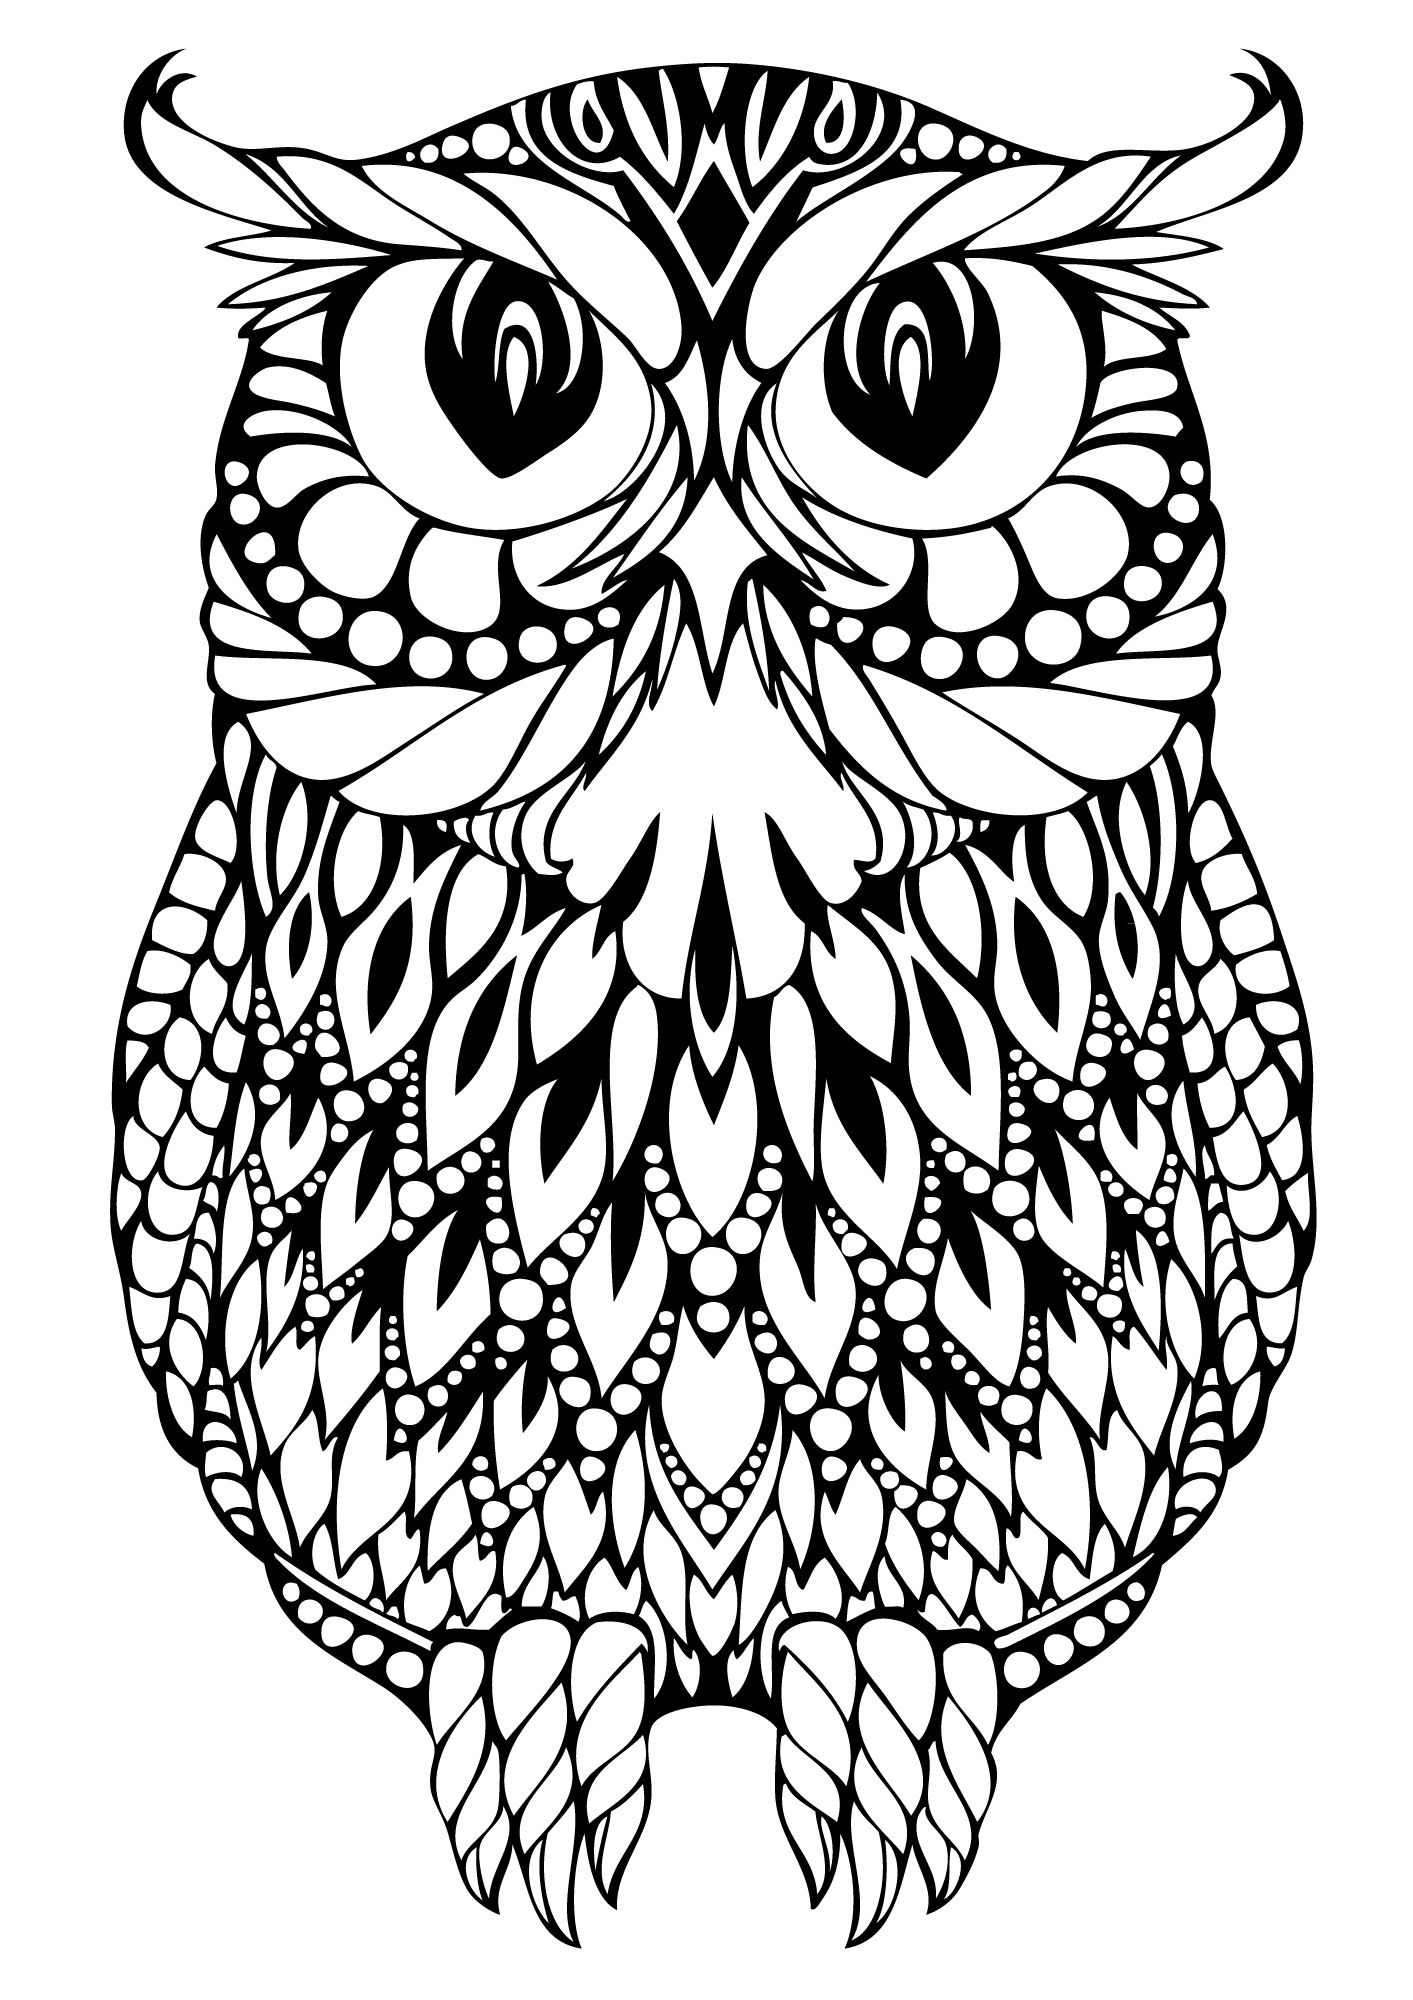 Hard Owl Coloring Pages Characters Animals Coloring Pages Owl Coloring Pages Animal Coloring Pages Coloring Pages